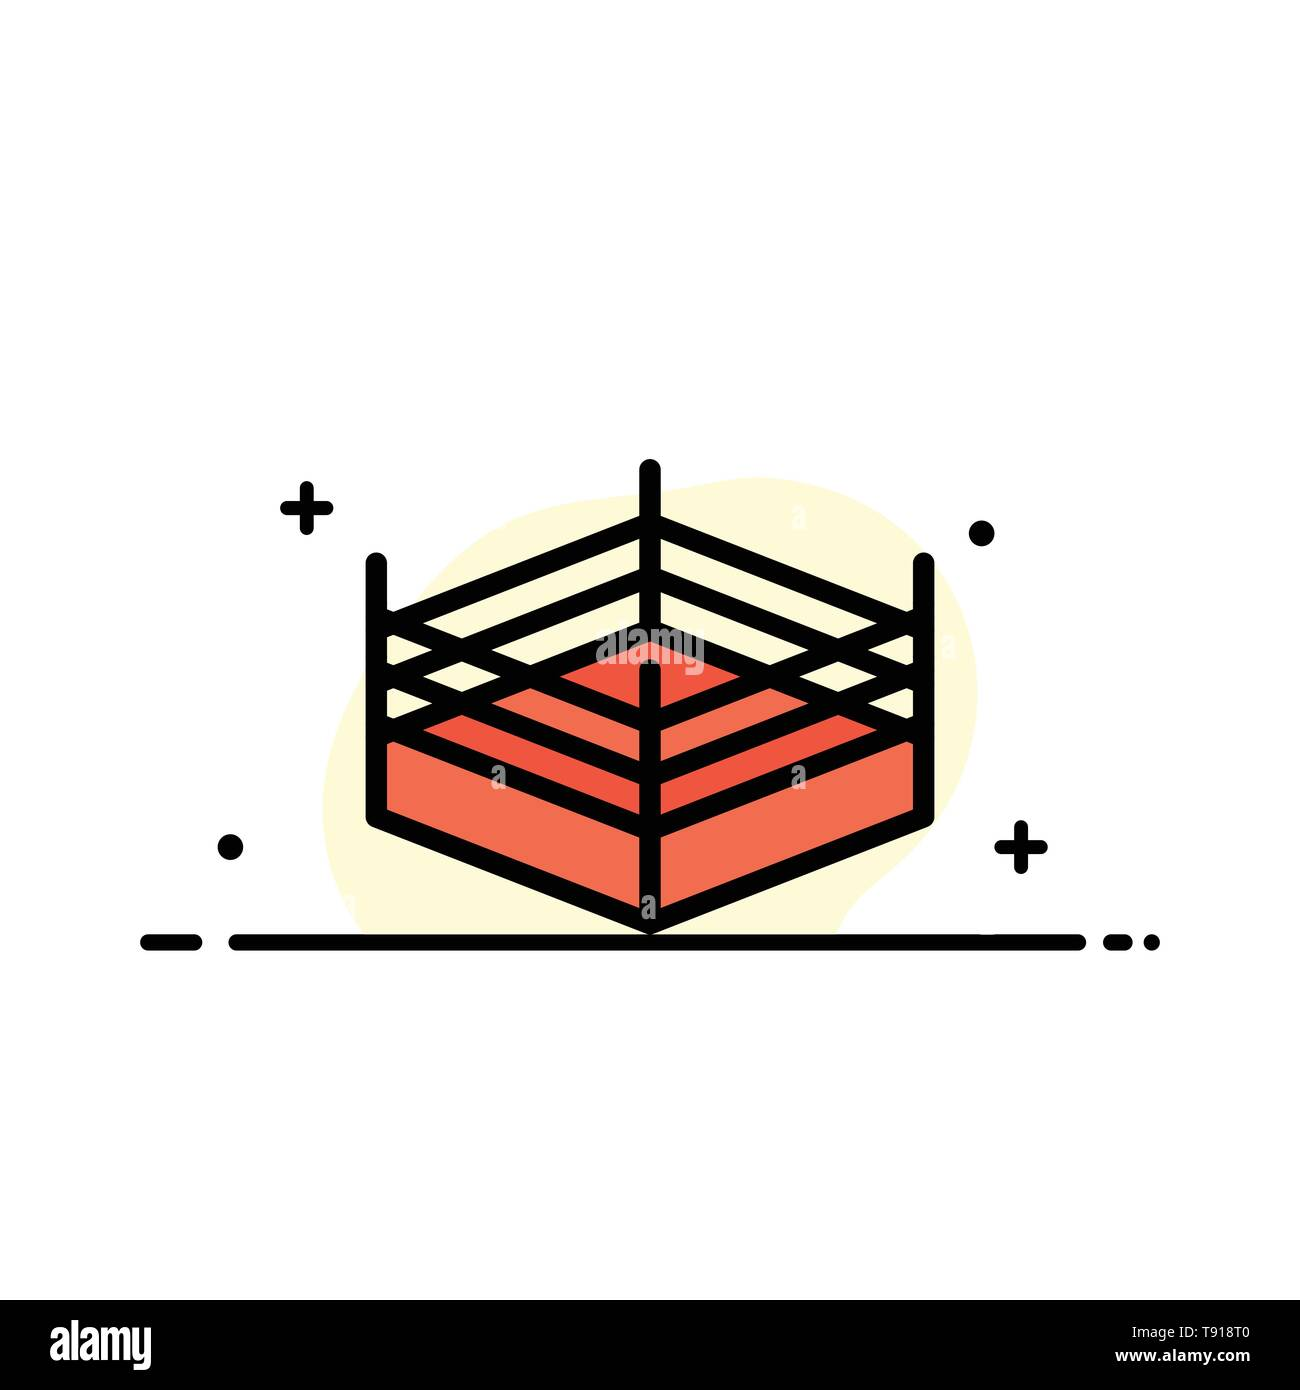 Boxing, Ring, Wrestling  Business Flat Line Filled Icon Vector Banner Template - Stock Image